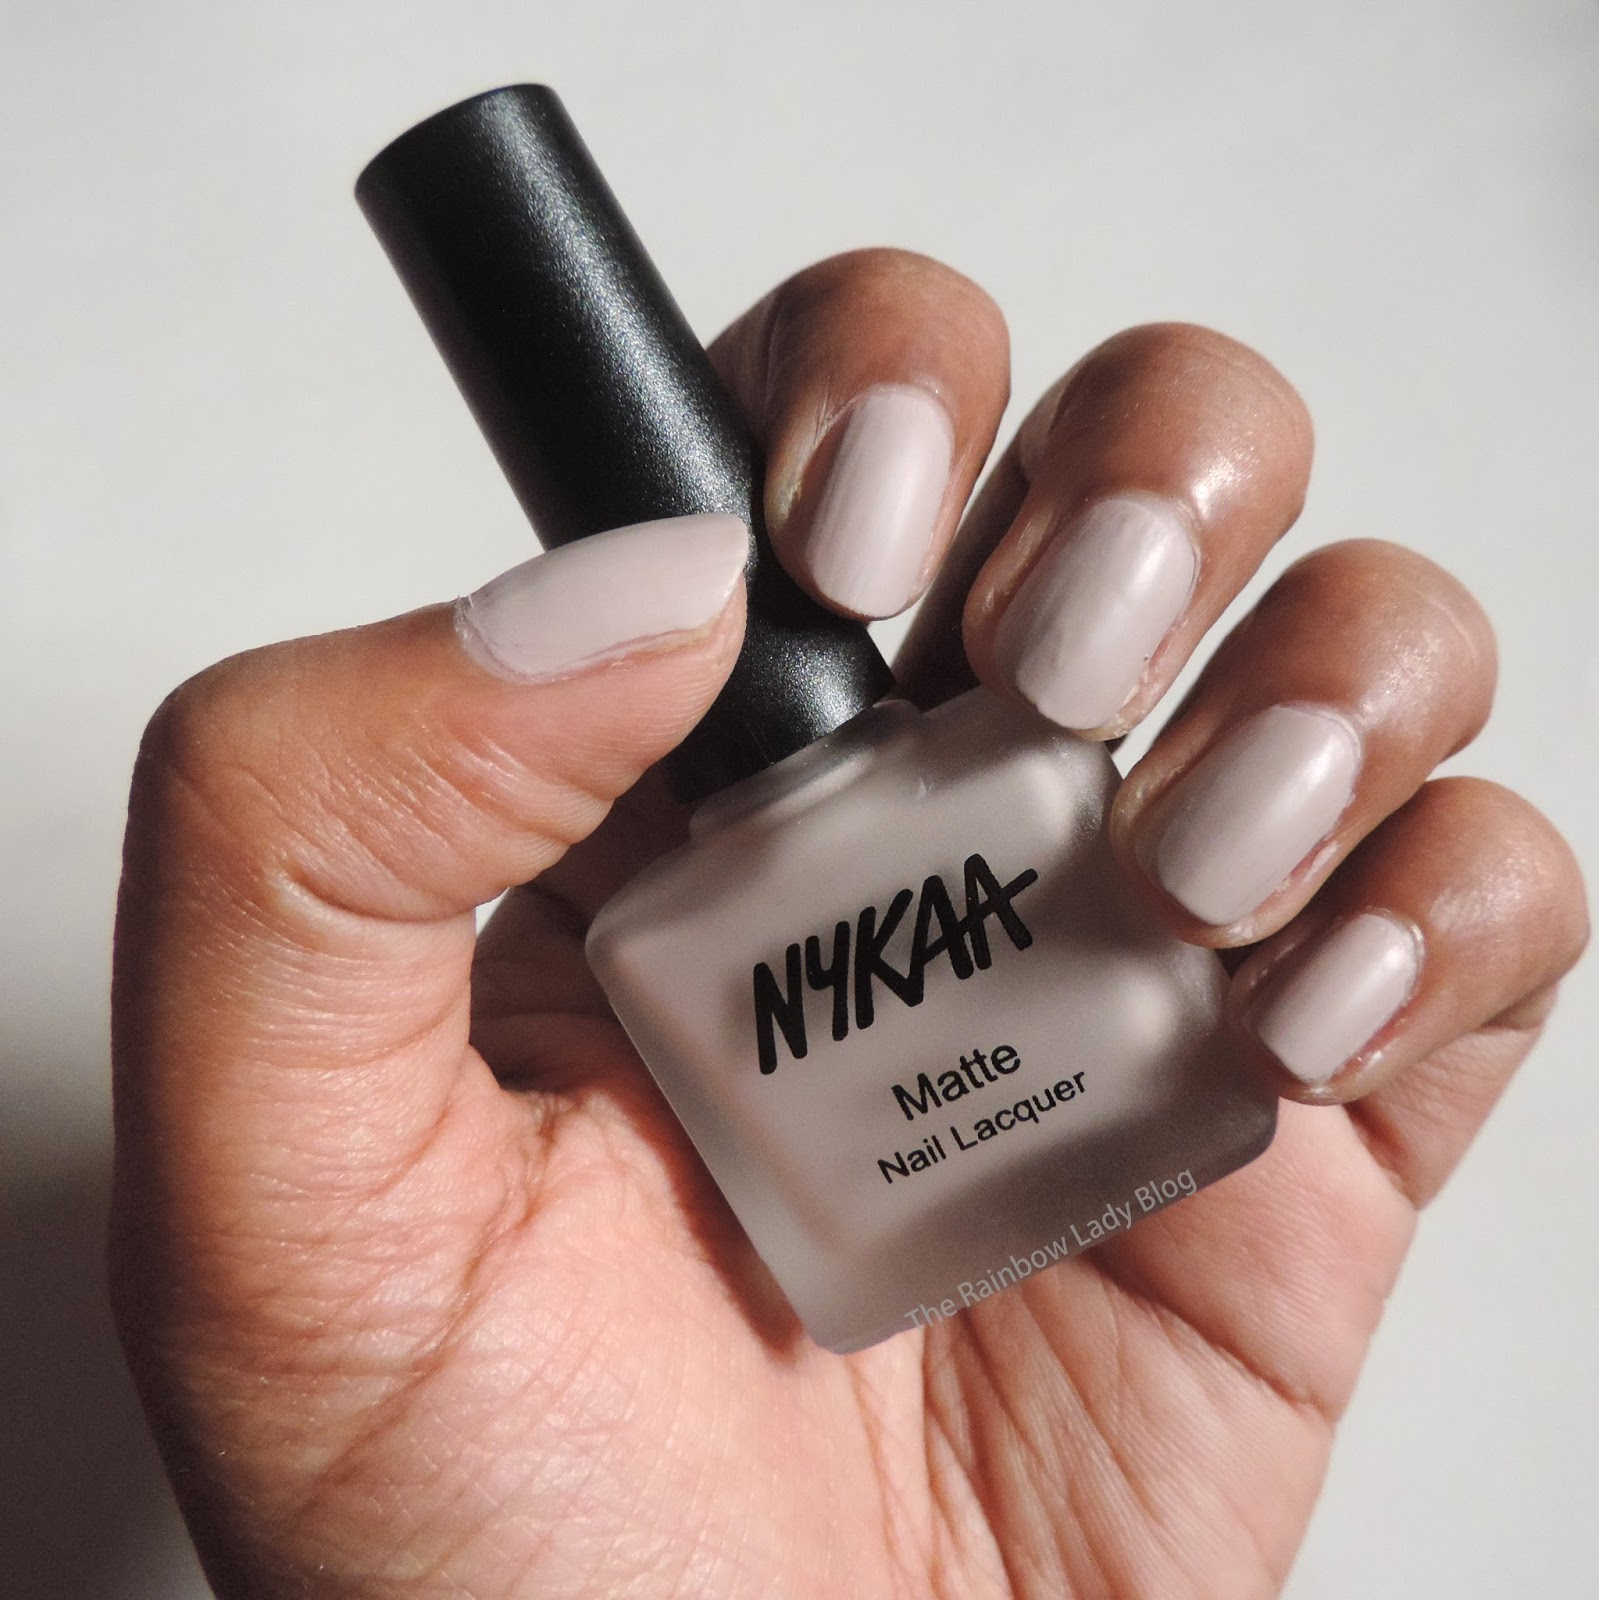 Nykaa Matte Nail Lacquer In S Mores Milkshake